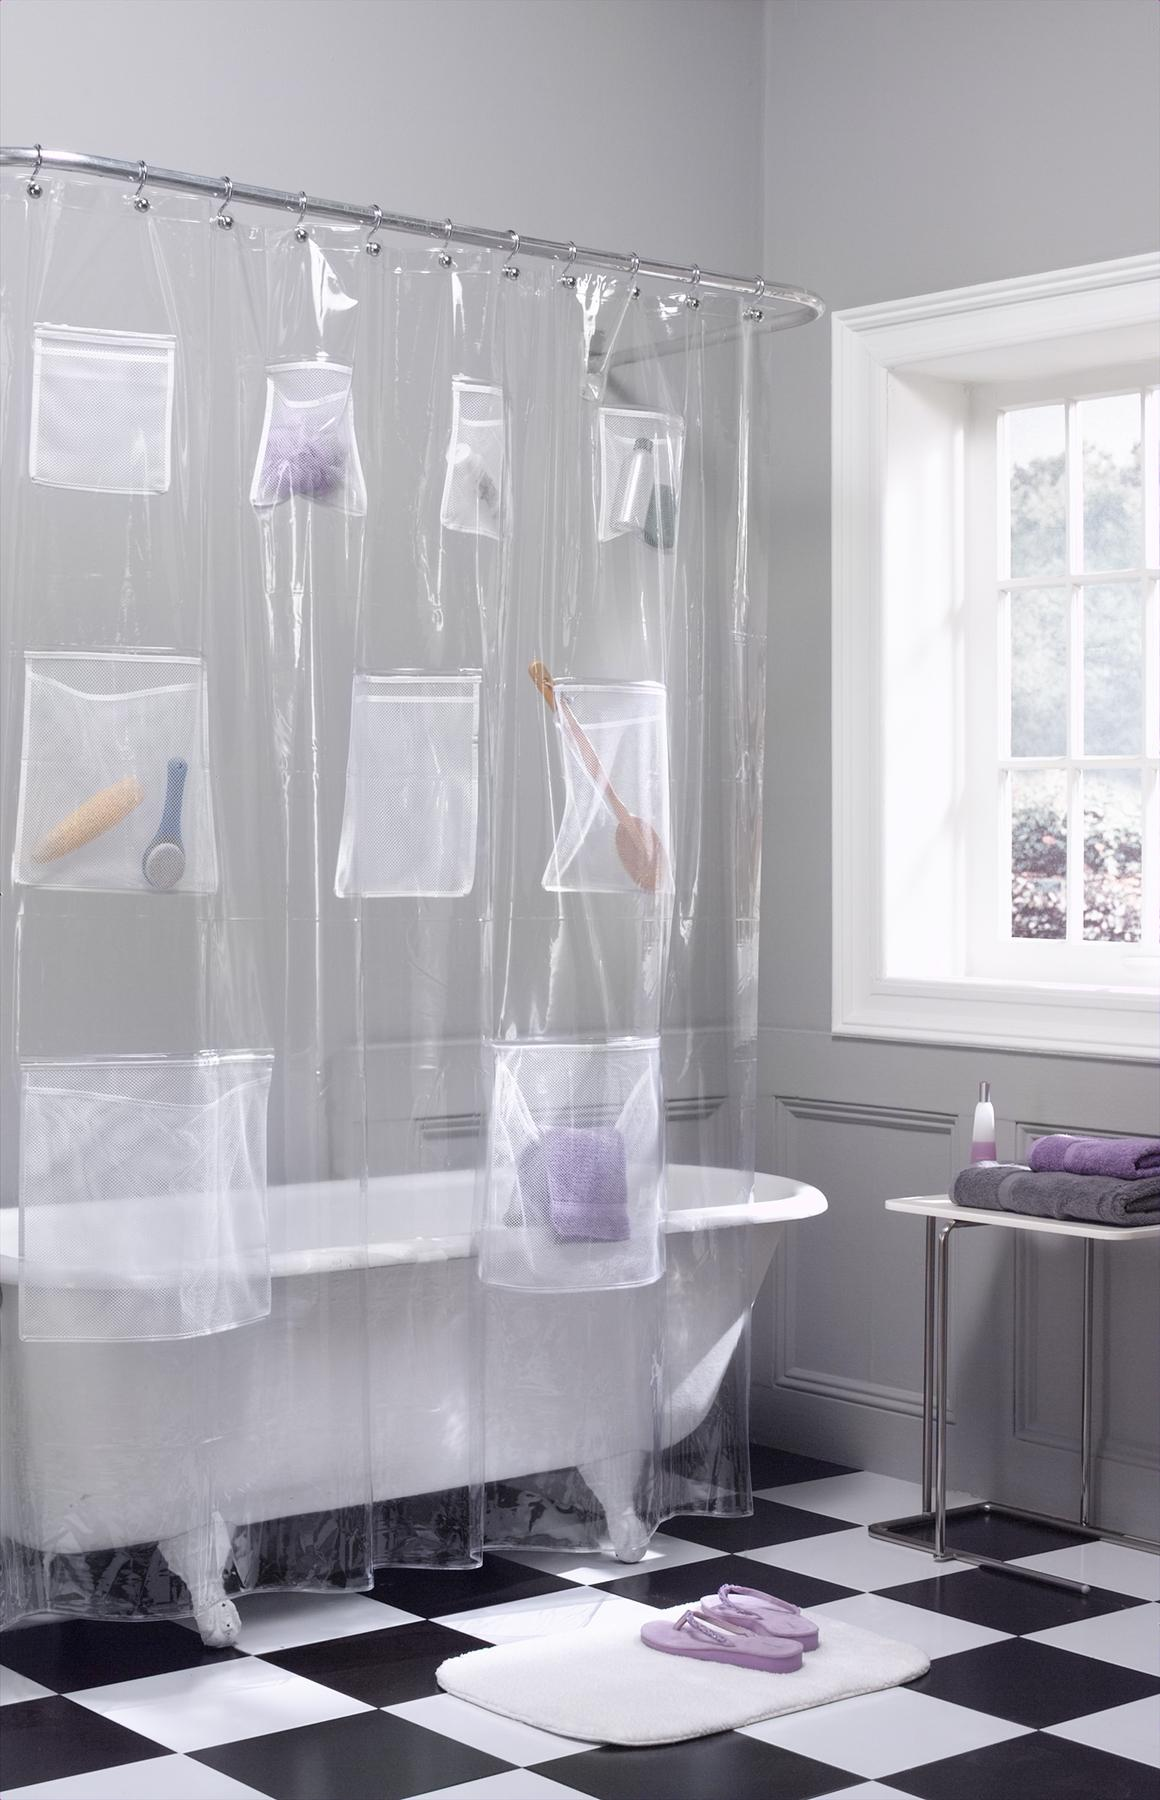 Shower Curtain Liner | Hookless Shower Curtain Liner | Non Toxic Shower Curtain Liner